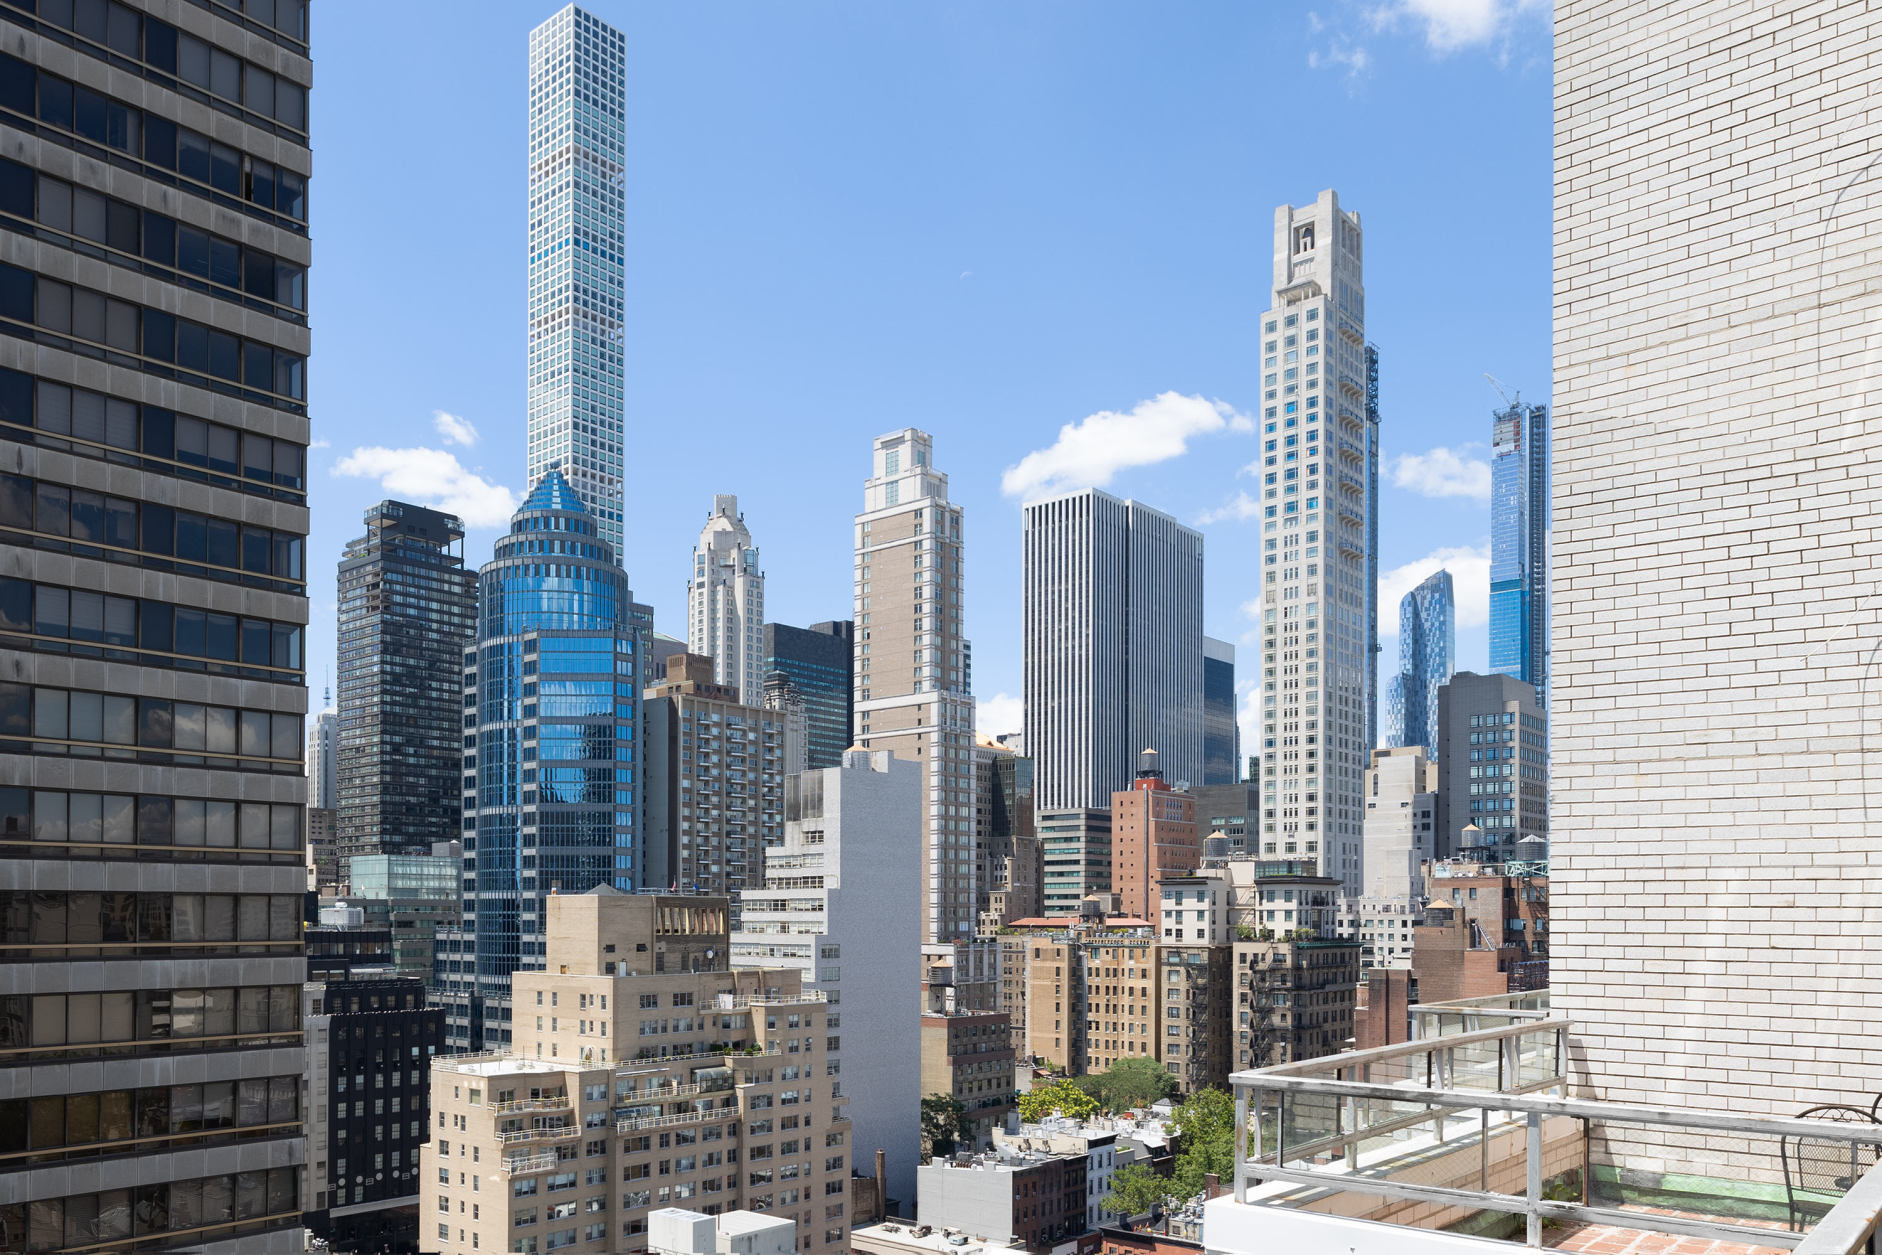 Apartment for sale at 175 East 62nd Street, Apt 18-B